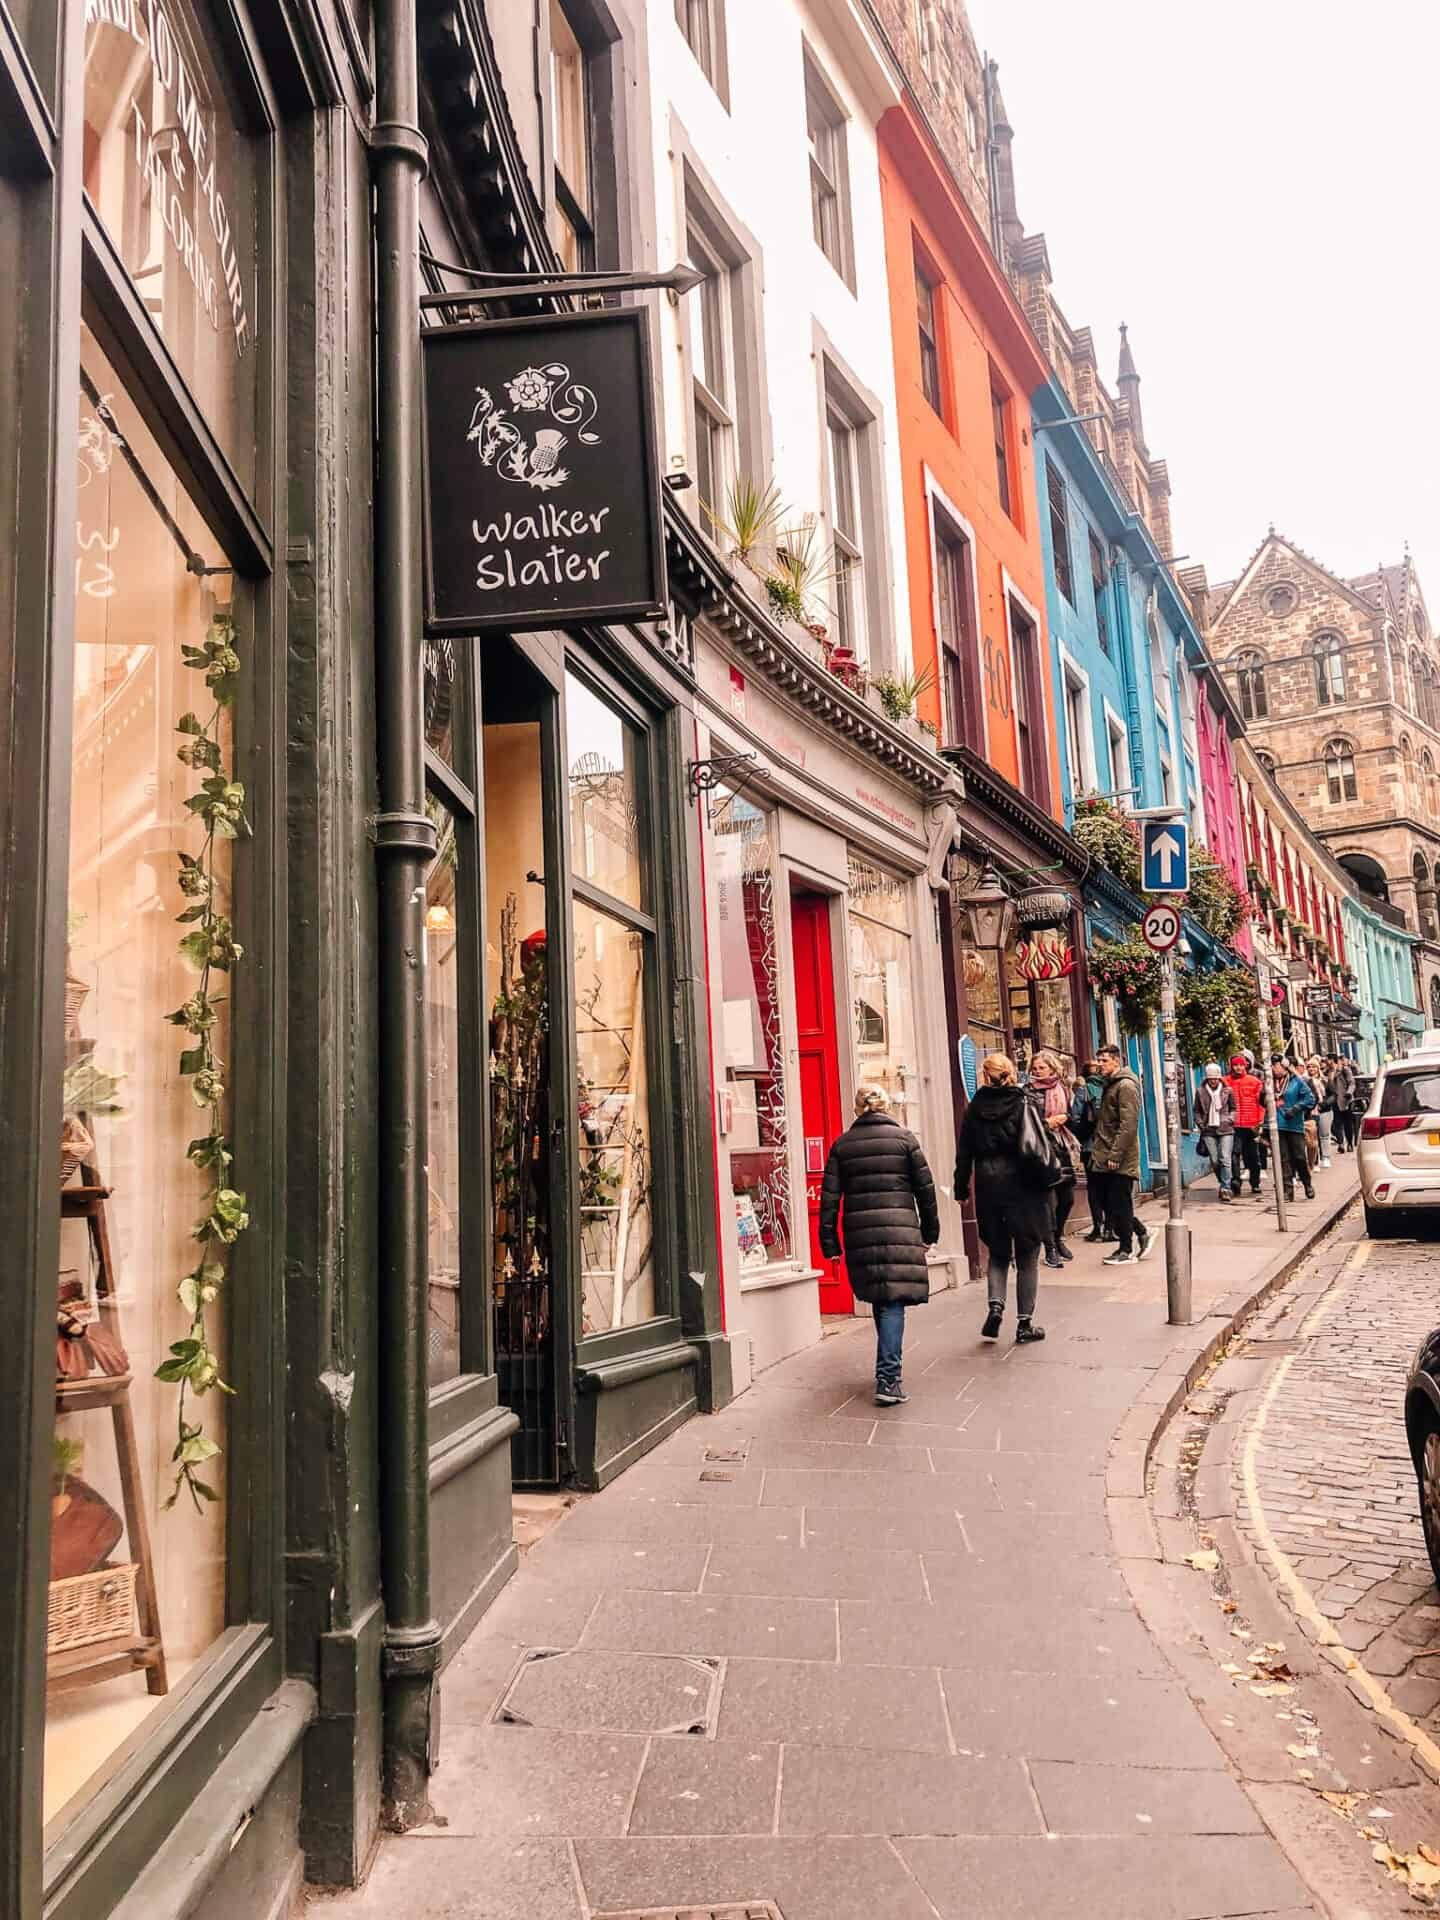 Uphill street with colourful shops and buildings in Edinburgh